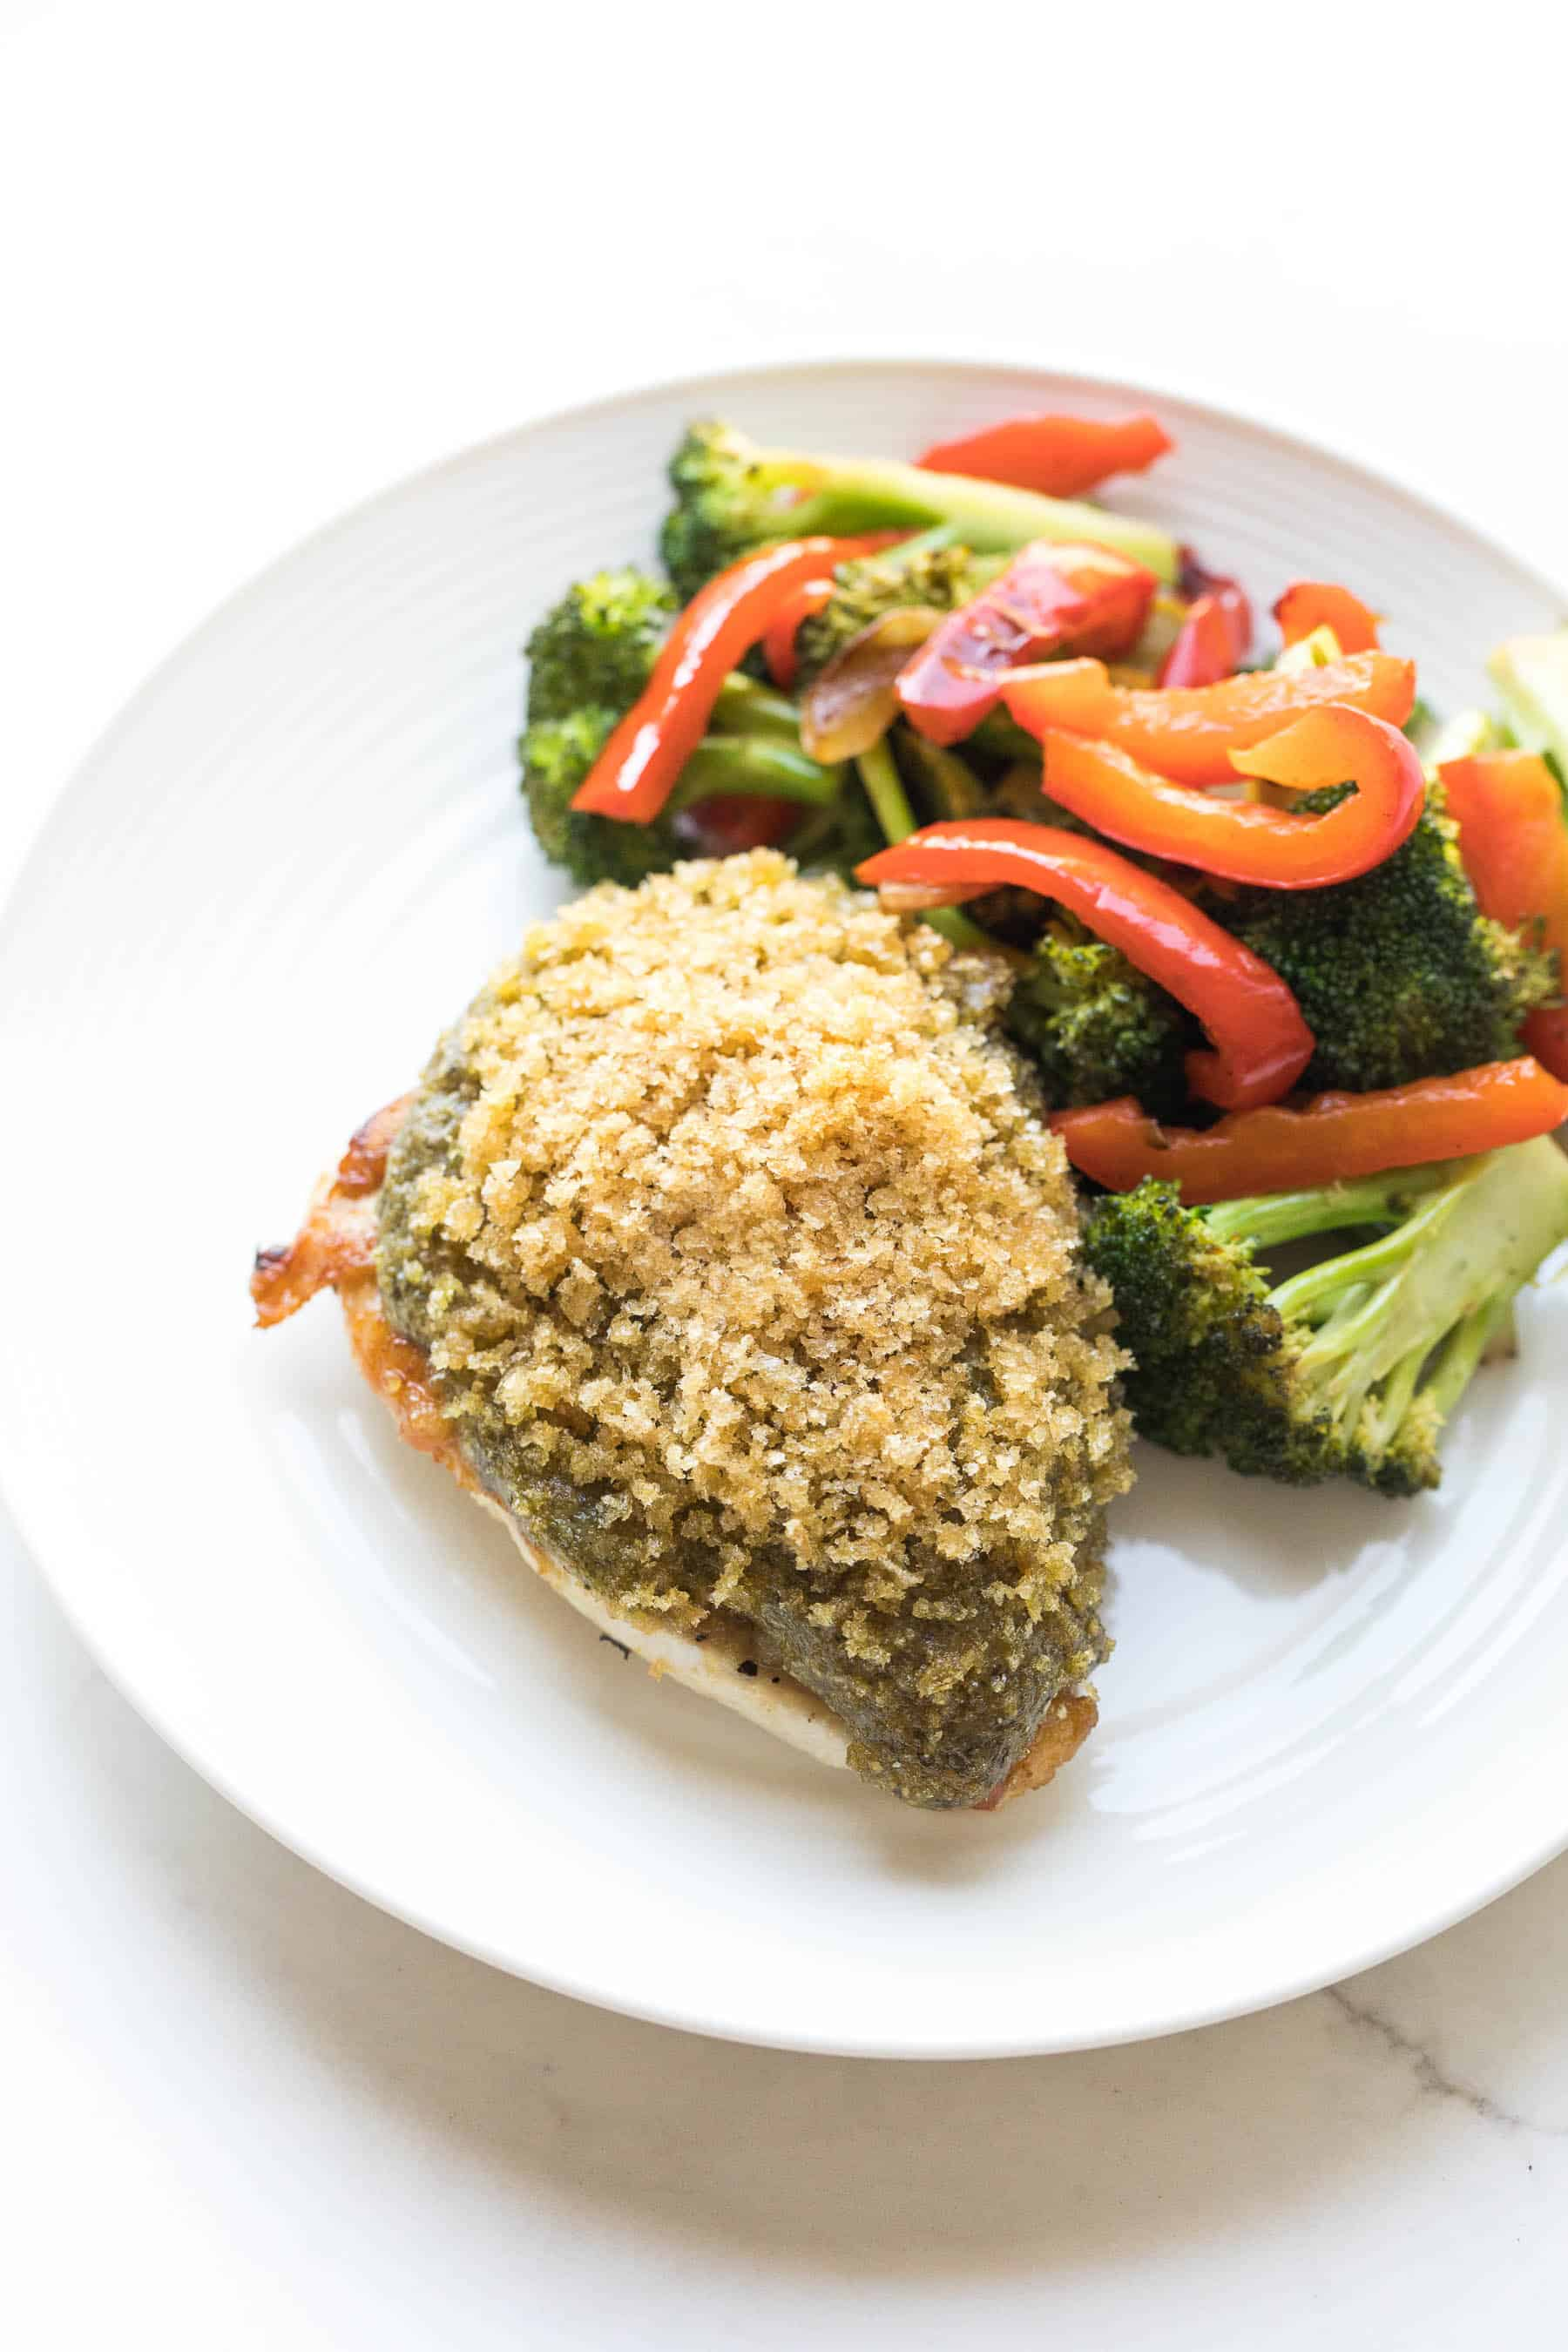 Crispy pesto chicken on a white plate with vegetables